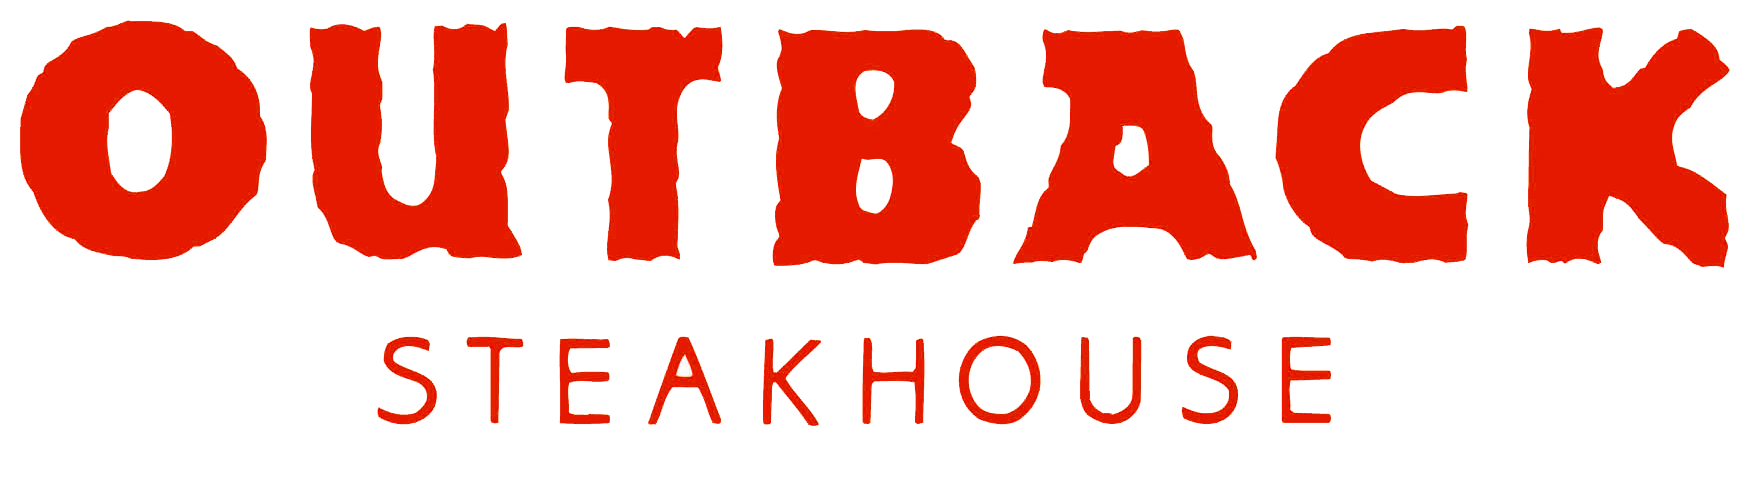 outback-steakhouse-outback-steakhouse-png-1753_485